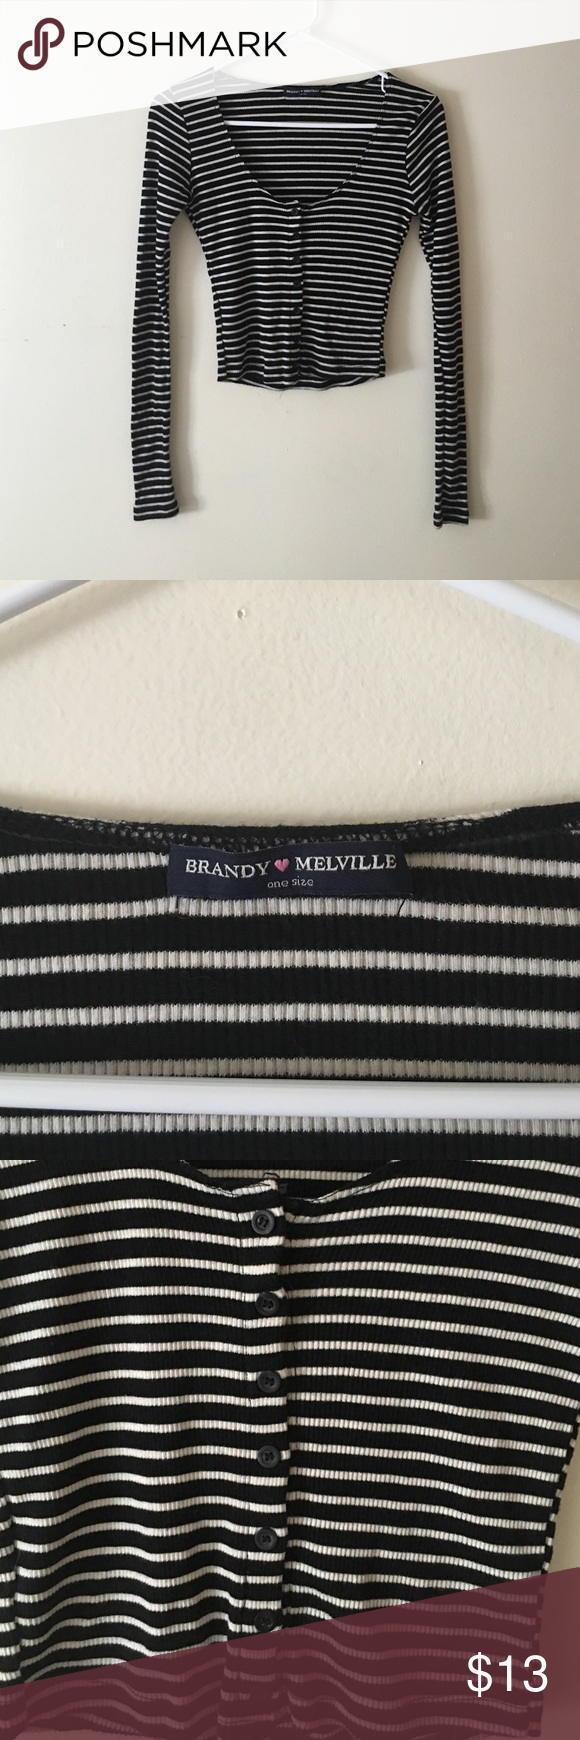 Striped Crop Top One size, fits like a small. Bought online from Brandy a while ago, worn once or twice. I'm like new condition. Very soft and comfortable, just not getting the wear it deserves. Brandy Melville Tops Crop Tops